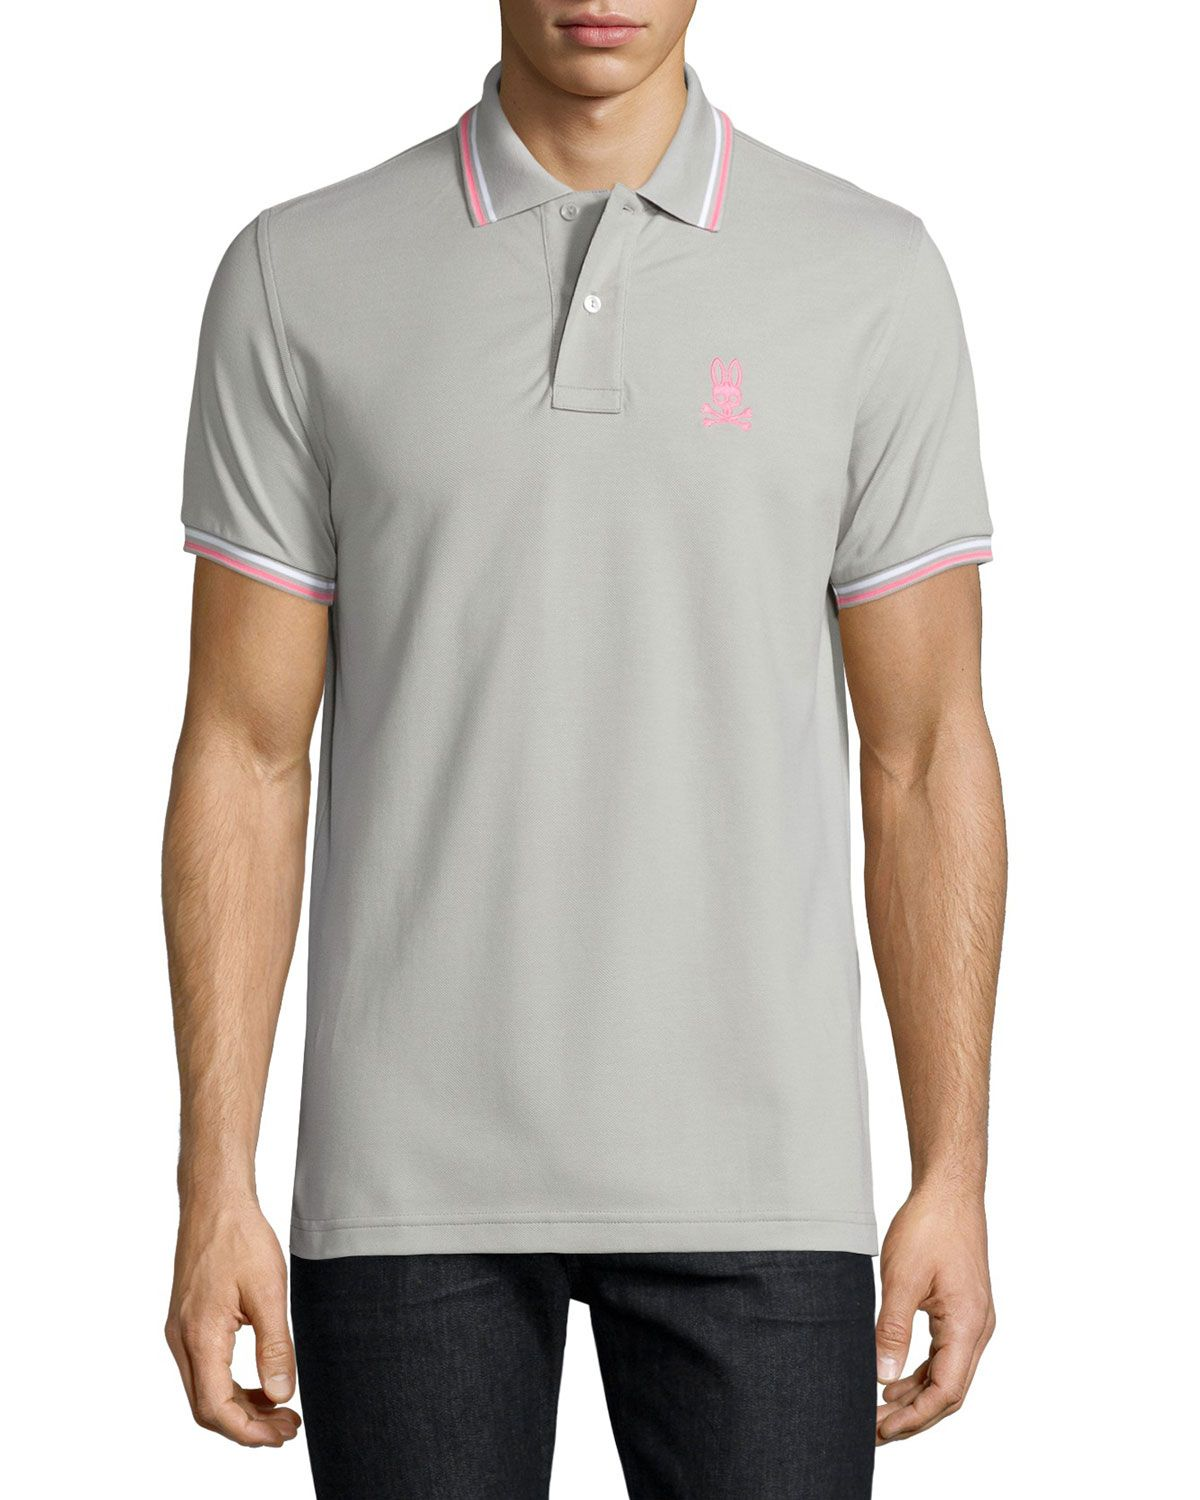 Psycho Bunny Classic Polo Shirt with Contrast Trim, Light Grey, Lgy